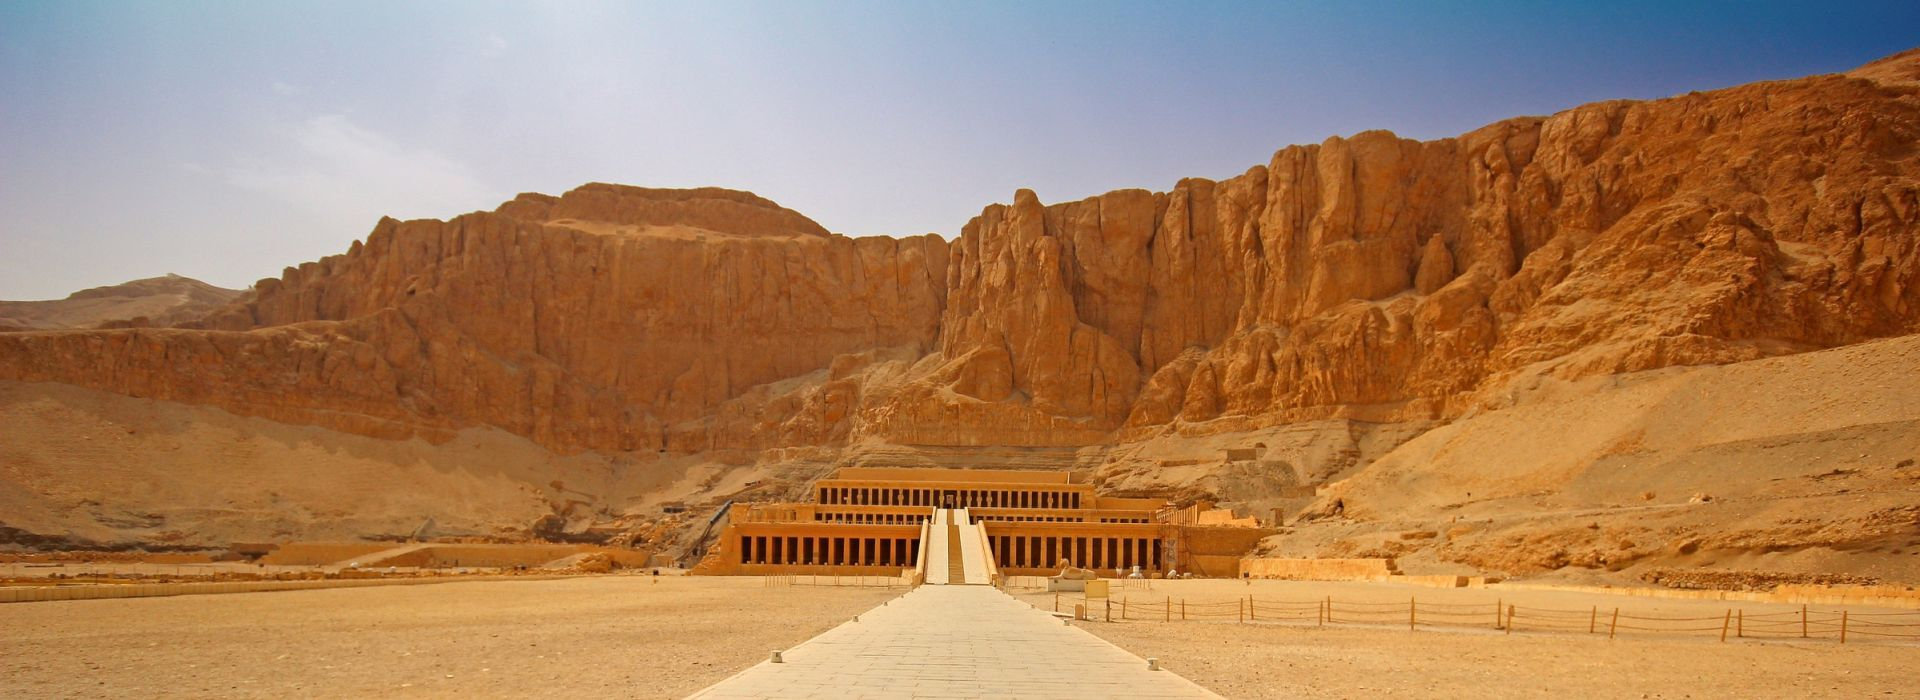 Cultural, religious and historic sites Tours in Giza